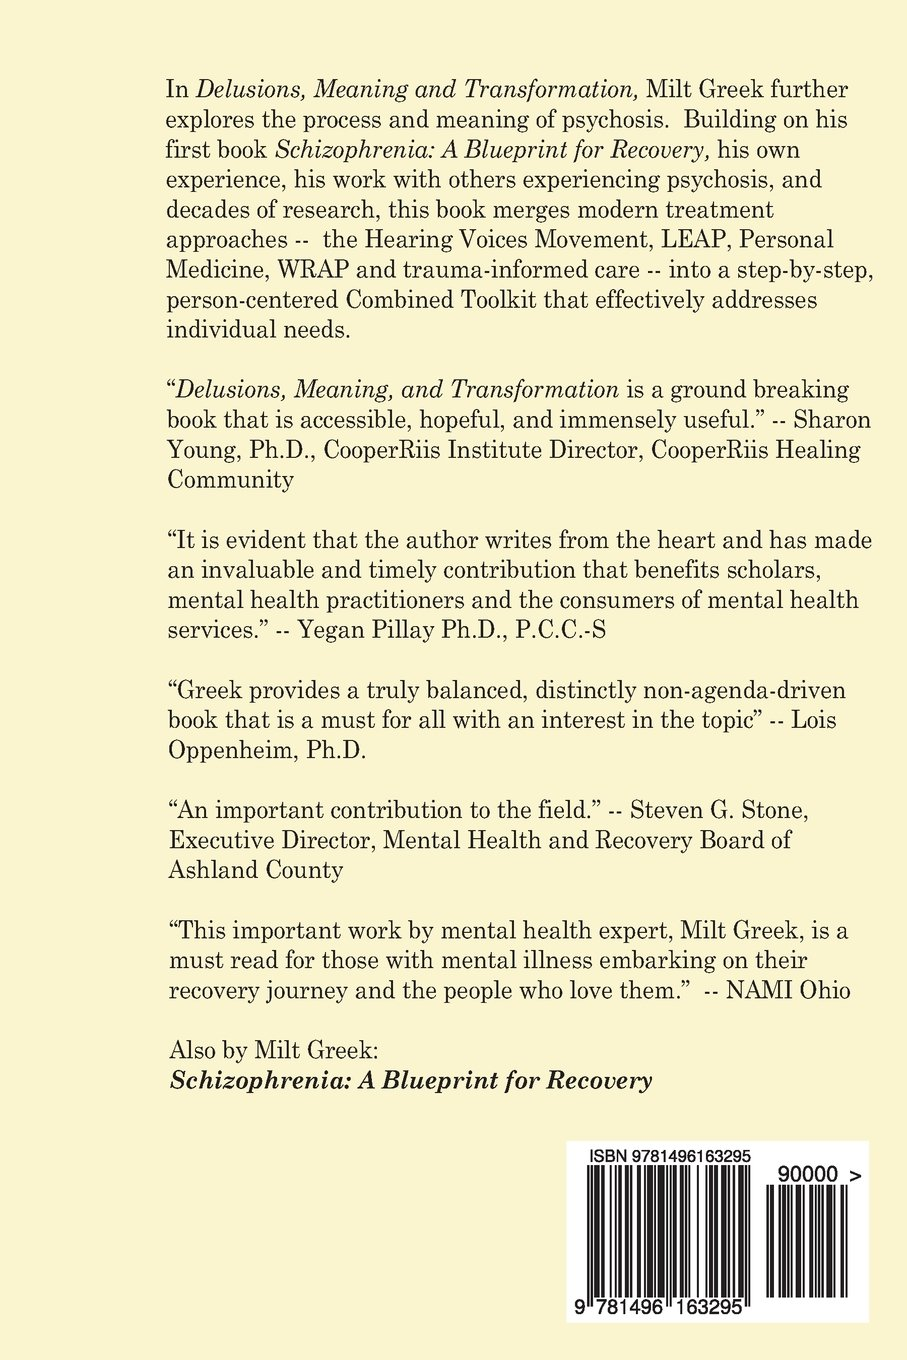 Delusions meaning and transformation milt greek 9781496163295 delusions meaning and transformation milt greek 9781496163295 amazon books malvernweather Choice Image